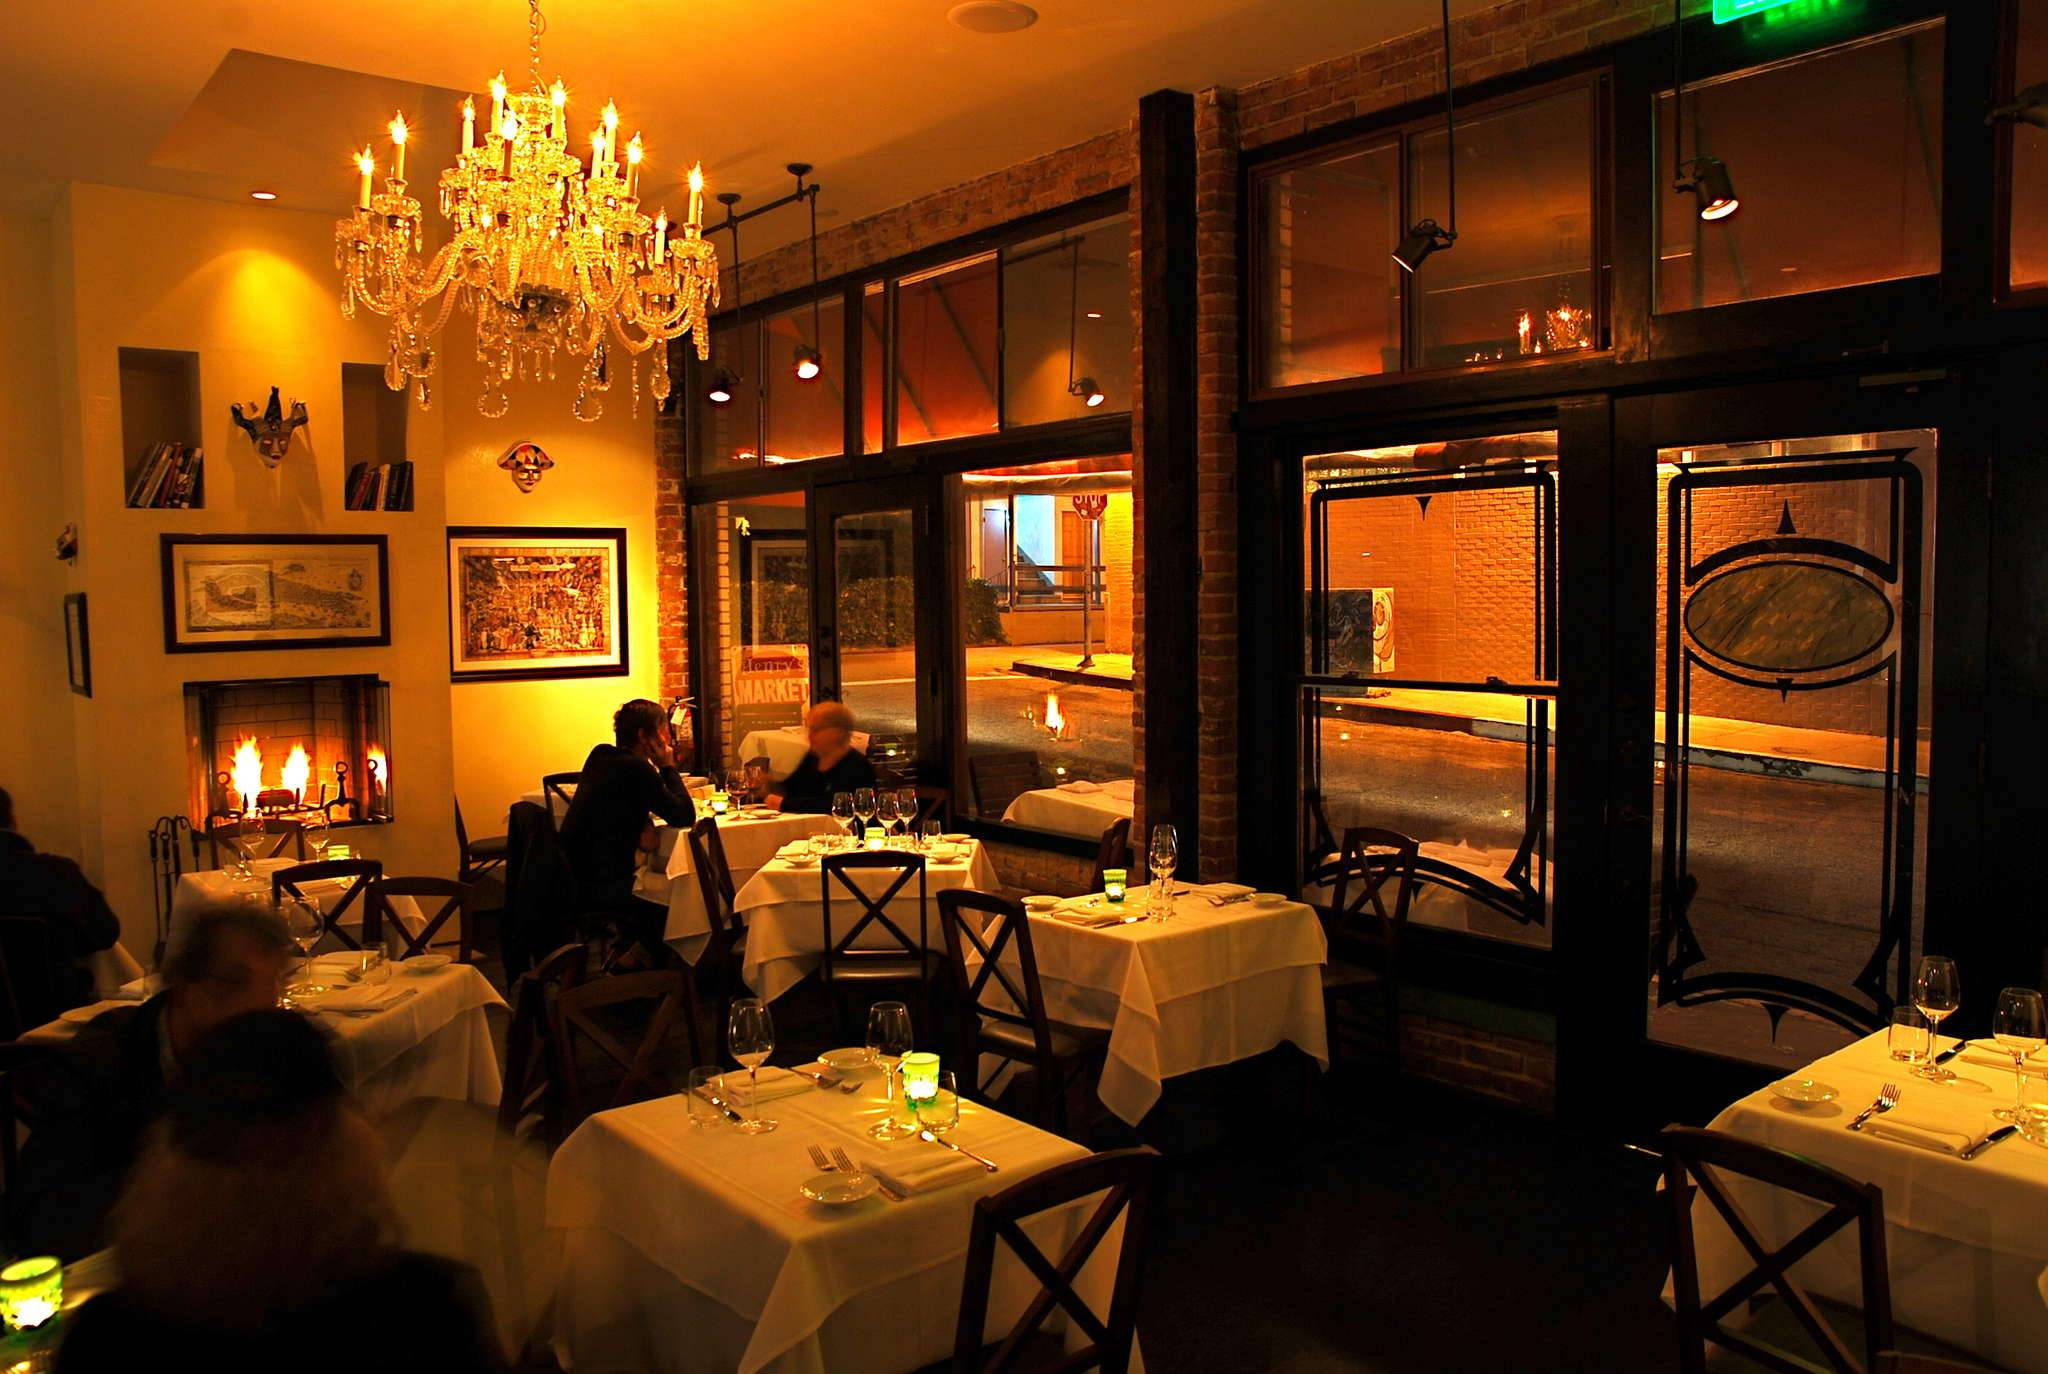 Ciao, Bella The Top 5 Italian Restaurants In Los Angeles. Can You Get An Associates Degree Online. Accommodation In Port Douglas. Online Backup Services Free Stock Data Feed. Auto Body Repair Durham Nc Vw Dealerships Nj. Colleges In Dallas Texas For Nursing. Southern Health District Become A Chef Online. Photography Schools In Paris Donate Car Ny. Hipaa Compliant Shredder Loans San Antonio Tx